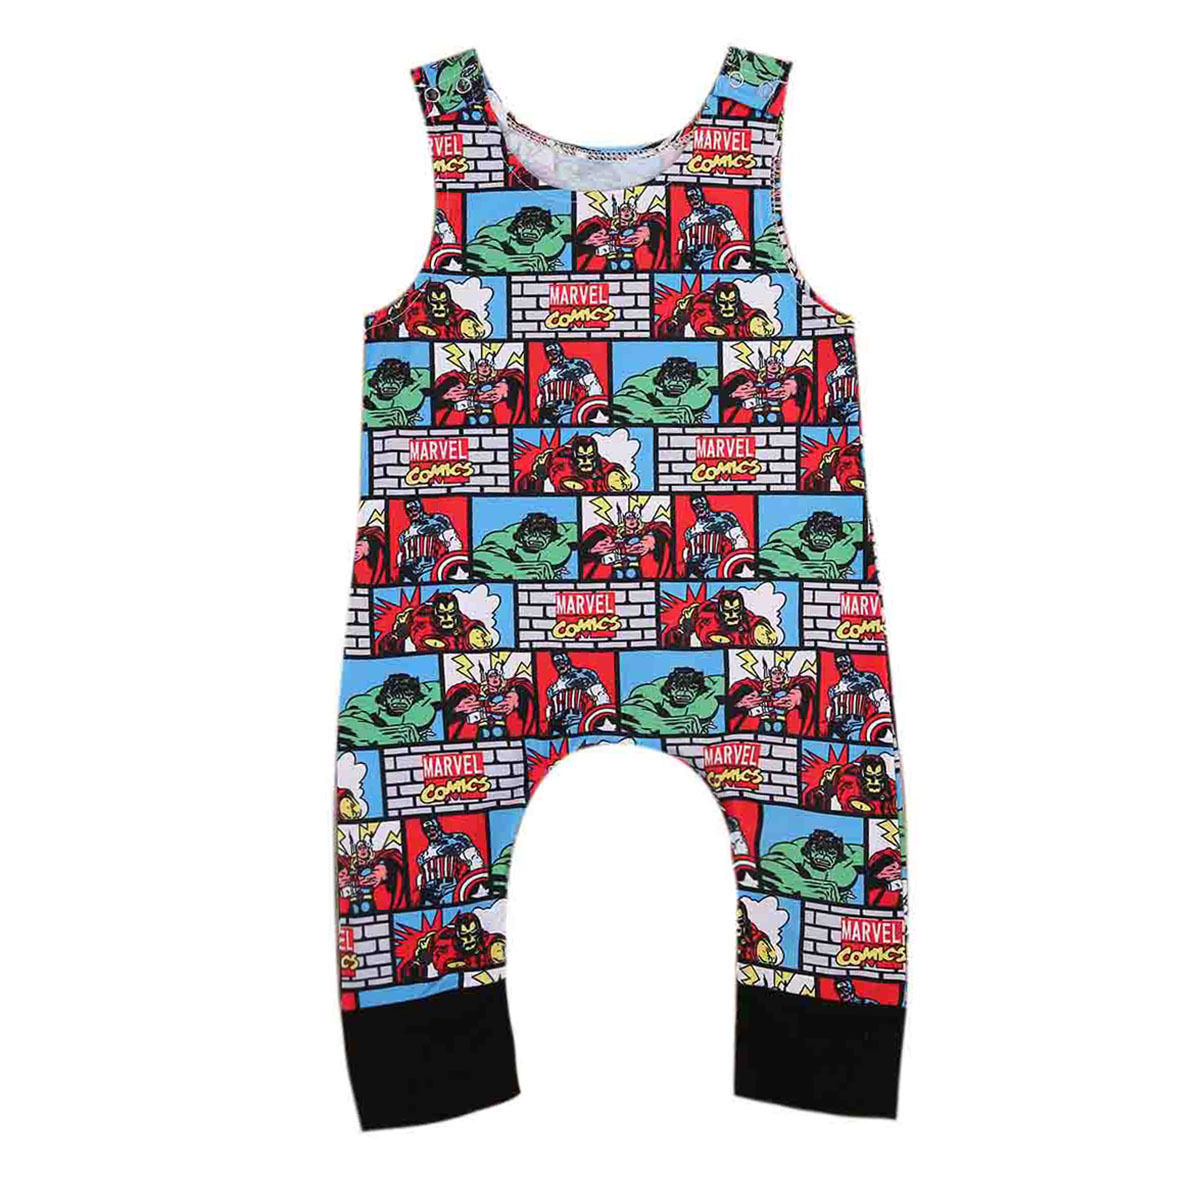 Cute Newborn Baby Rompers Summer Infant Boys Sleeveless Romper Cartoon Printed Jumper Cotton Blend Jumpsuit Kids Baby Outfits newborn baby rompers baby clothing 100% cotton infant jumpsuit ropa bebe long sleeve girl boys rompers costumes baby romper